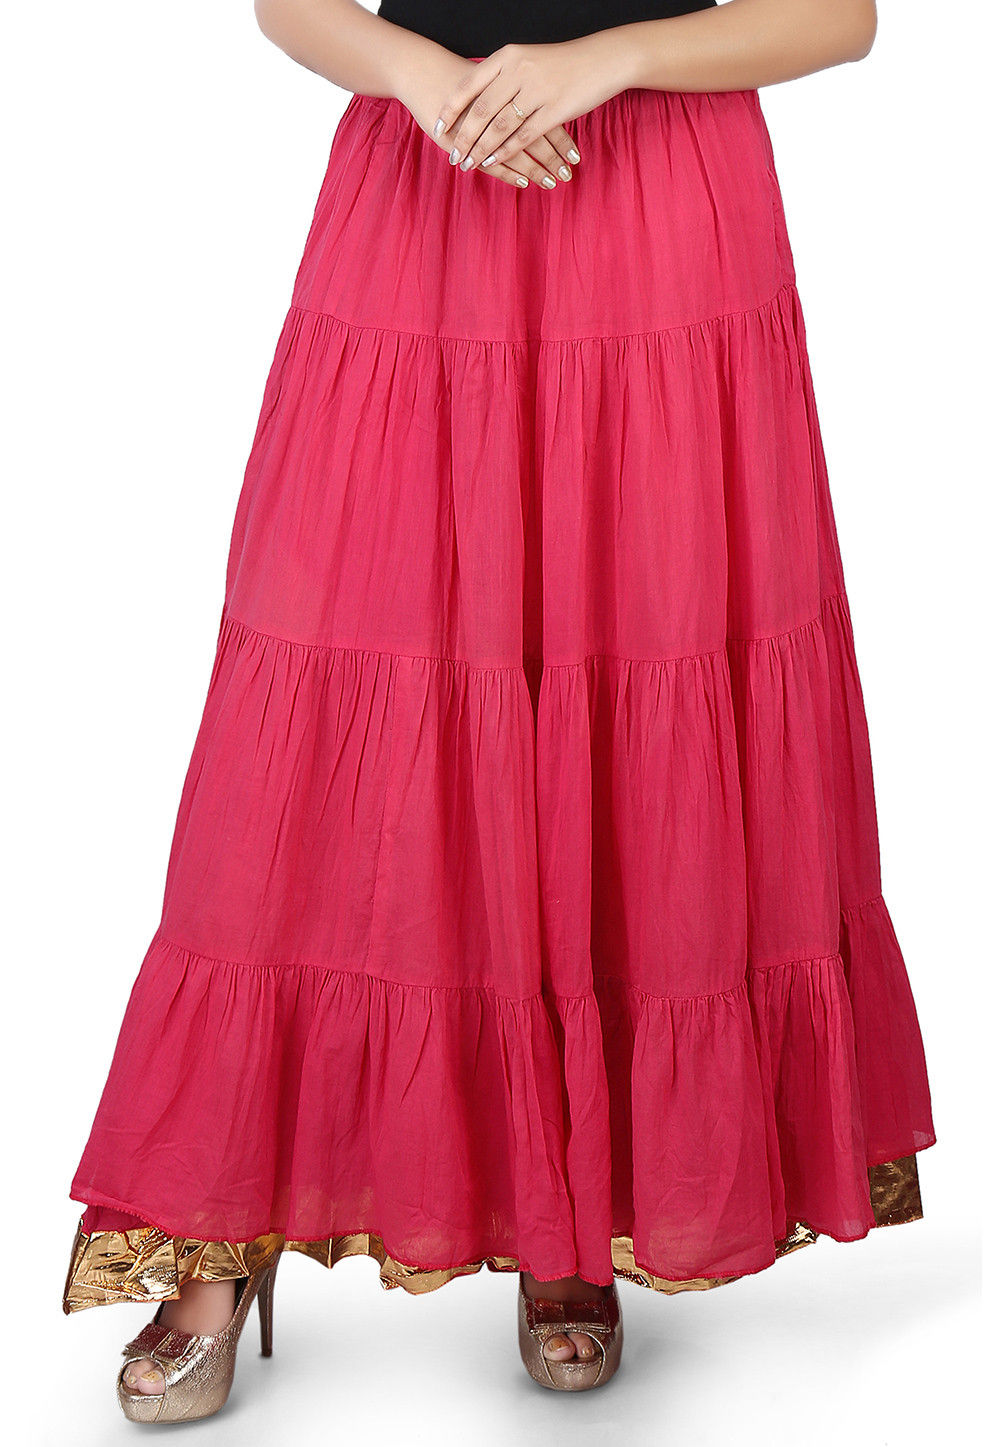 Plain Cotton Mulmul Long Skirt in Fuchsia